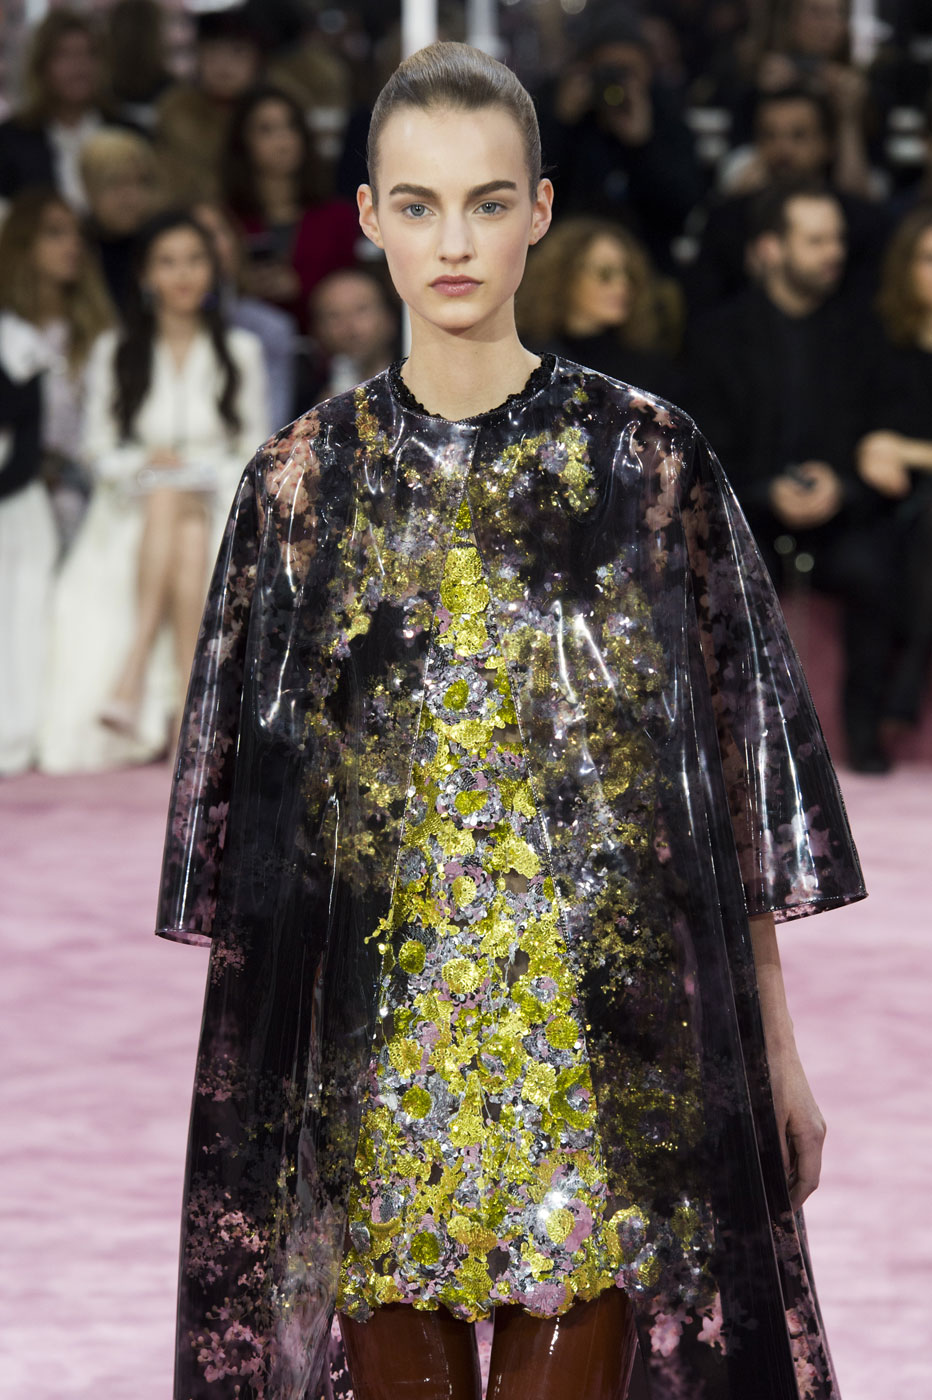 Christian-Dior-fashion-runway-show-haute-couture-paris-spring-summer-2015-the-impression-006